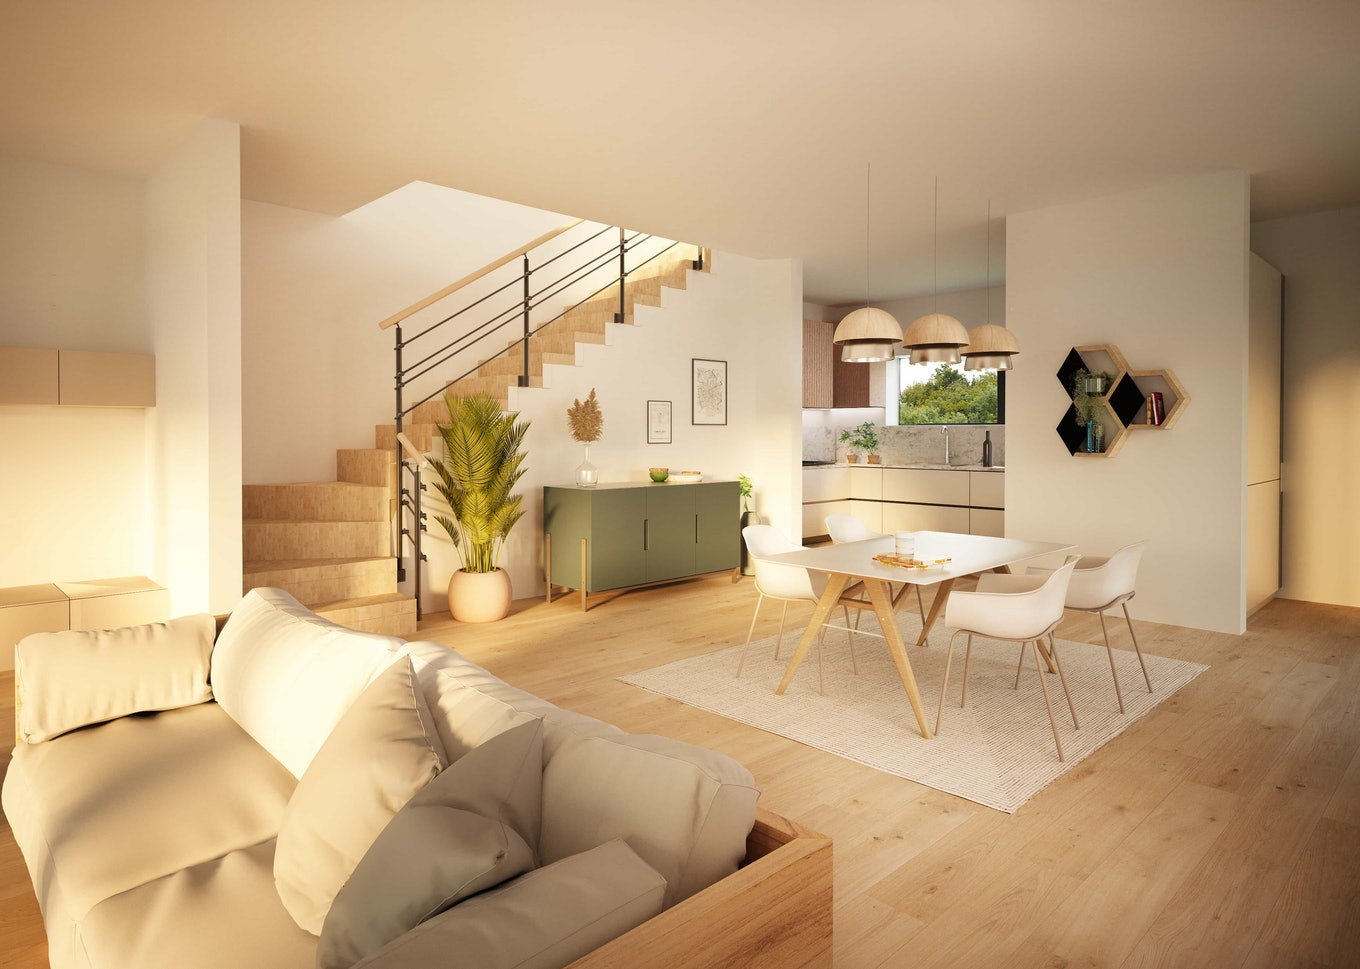 Real Estate Rendering Appartment Inside